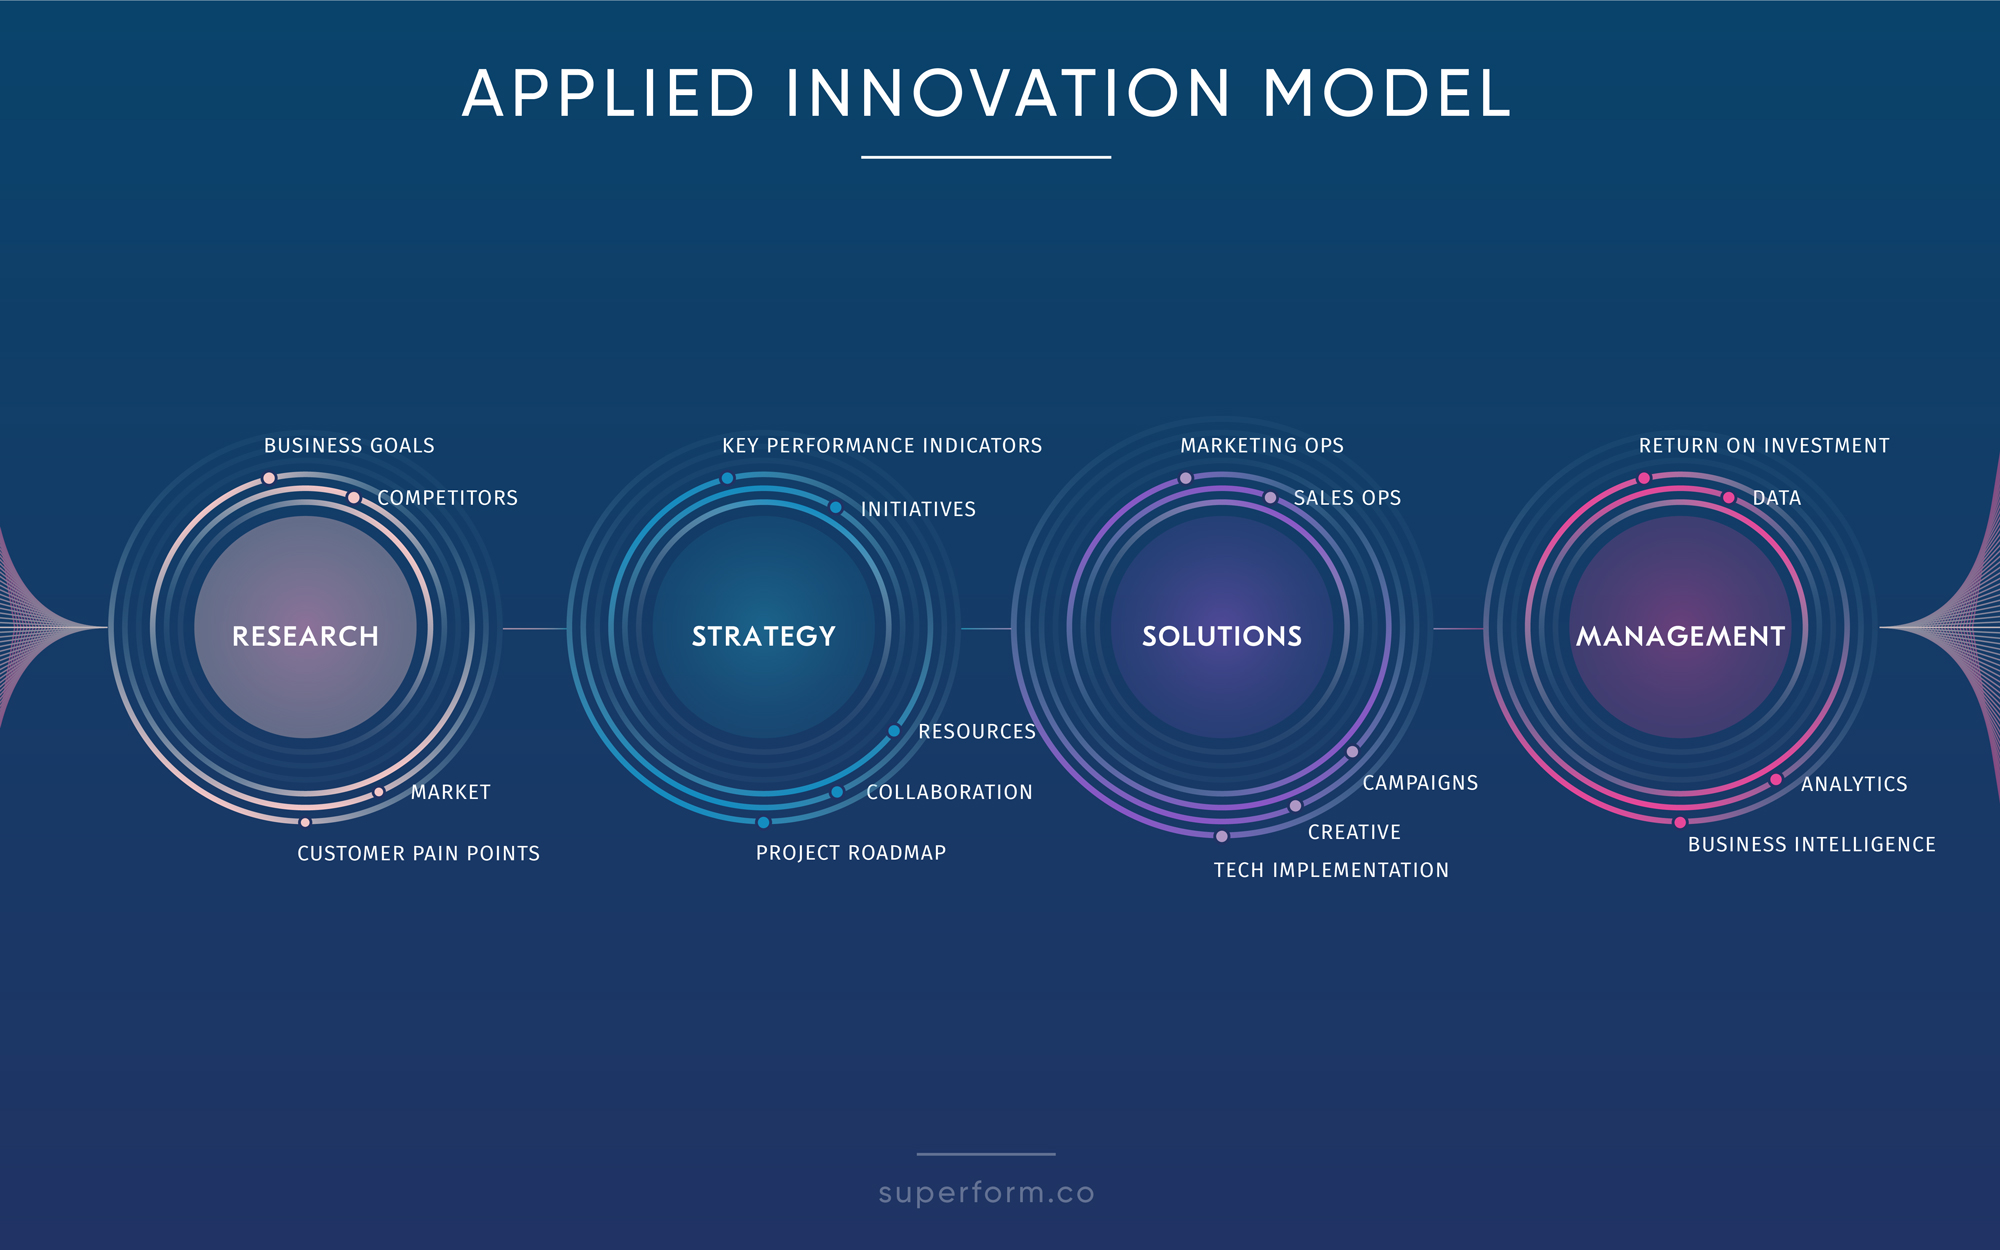 Innovation model of the consulting agency Superform